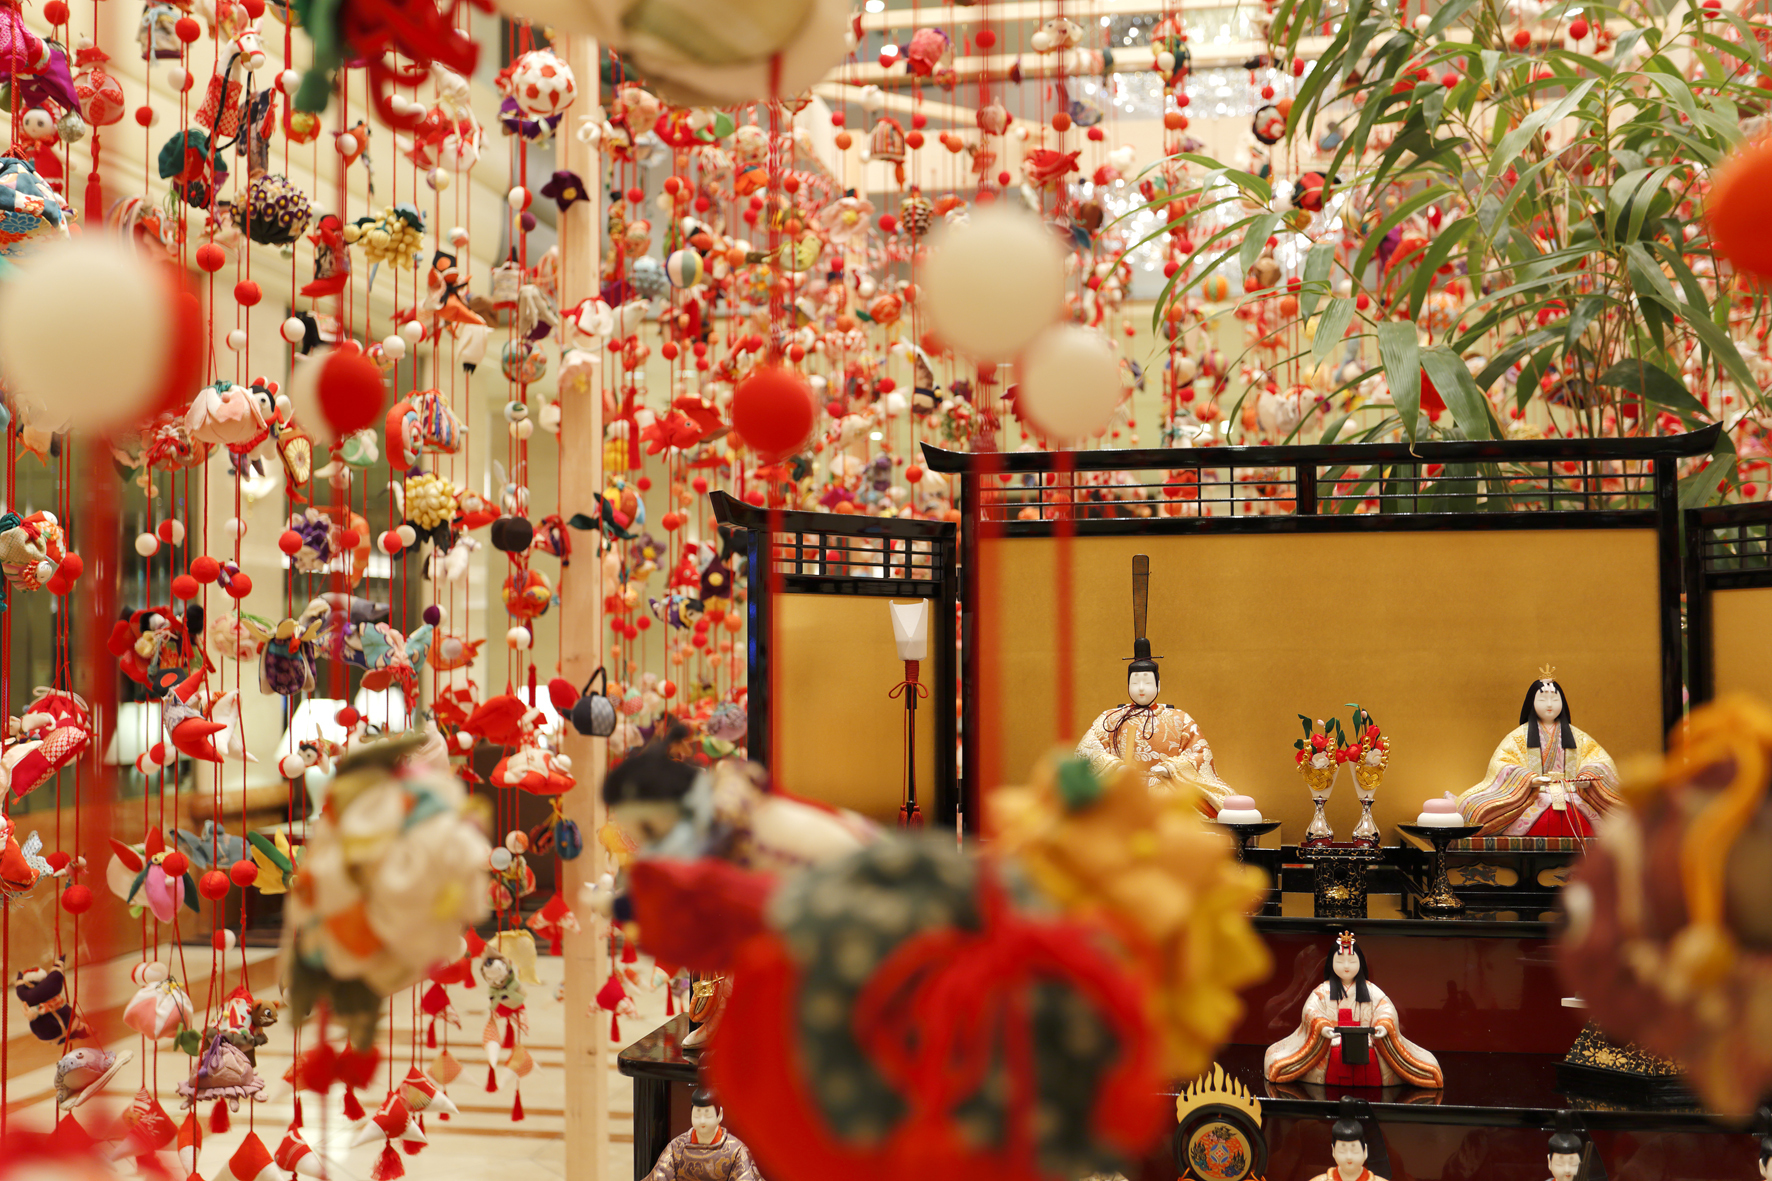 Keio Plaza Hotel Displays Traditional Japanese Dolls And Art